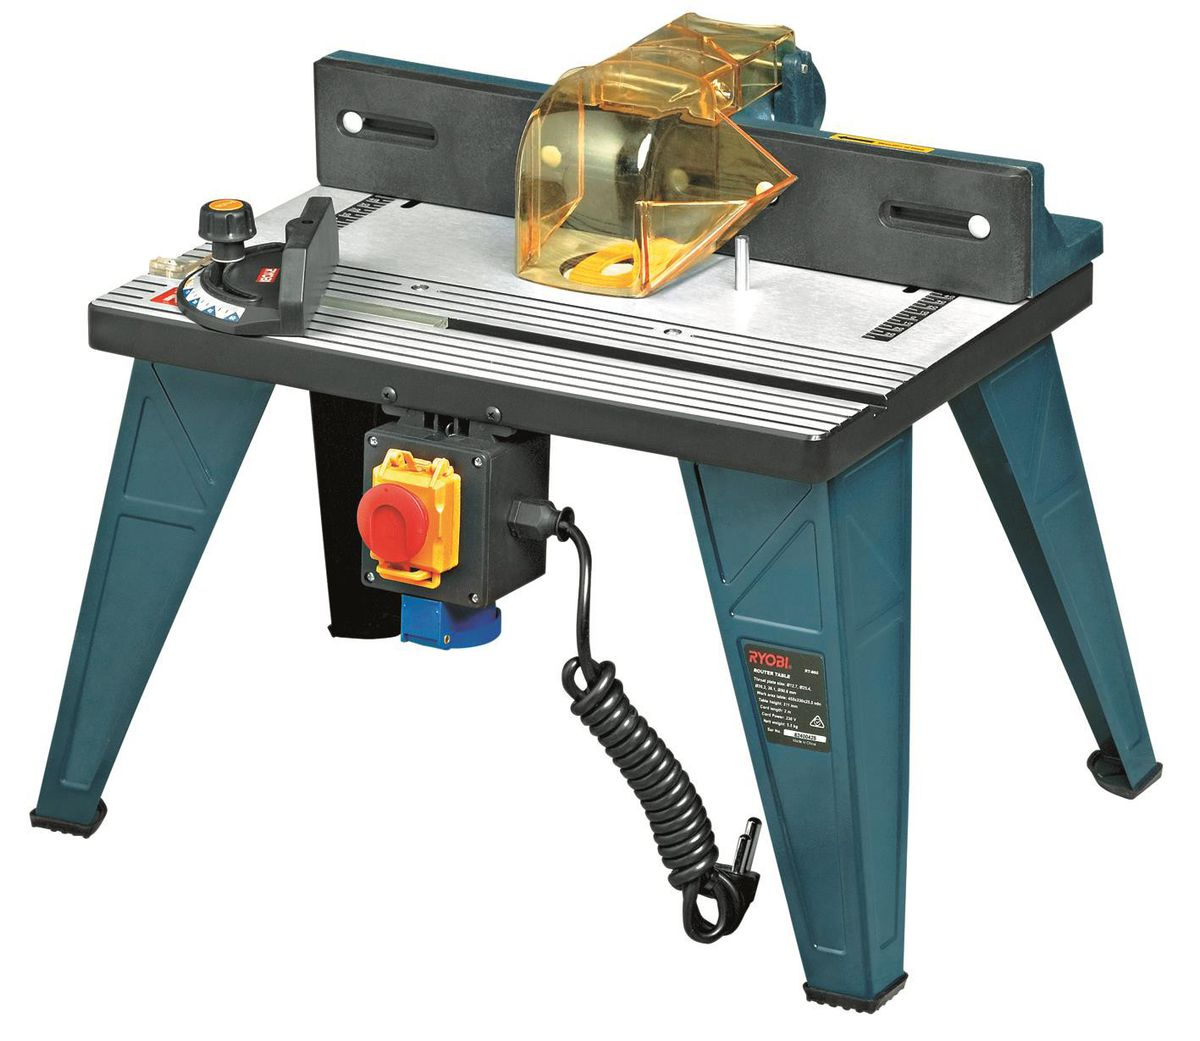 Ryobi router attachment table buy online in south africa ryobi router attachment table loading zoom greentooth Images